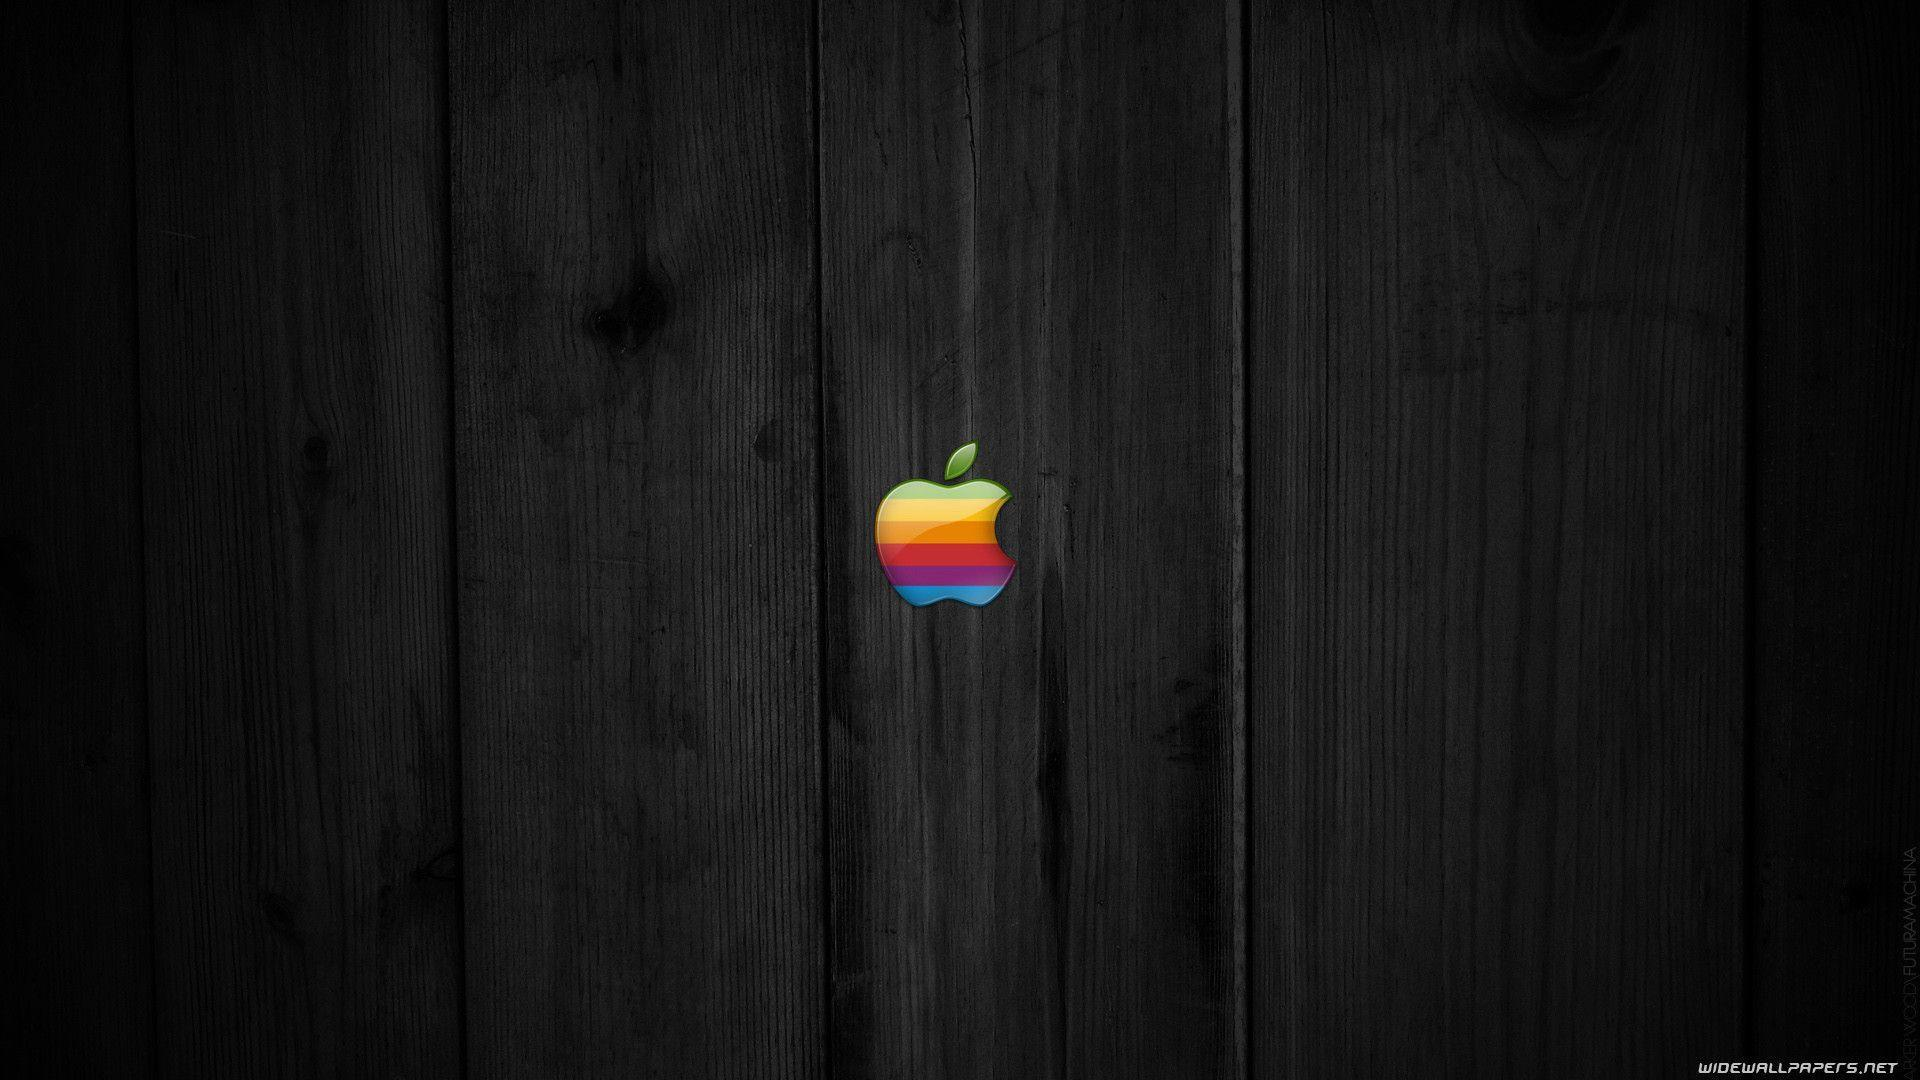 Apple Hd 1080p Wallpapers and Backgrounds